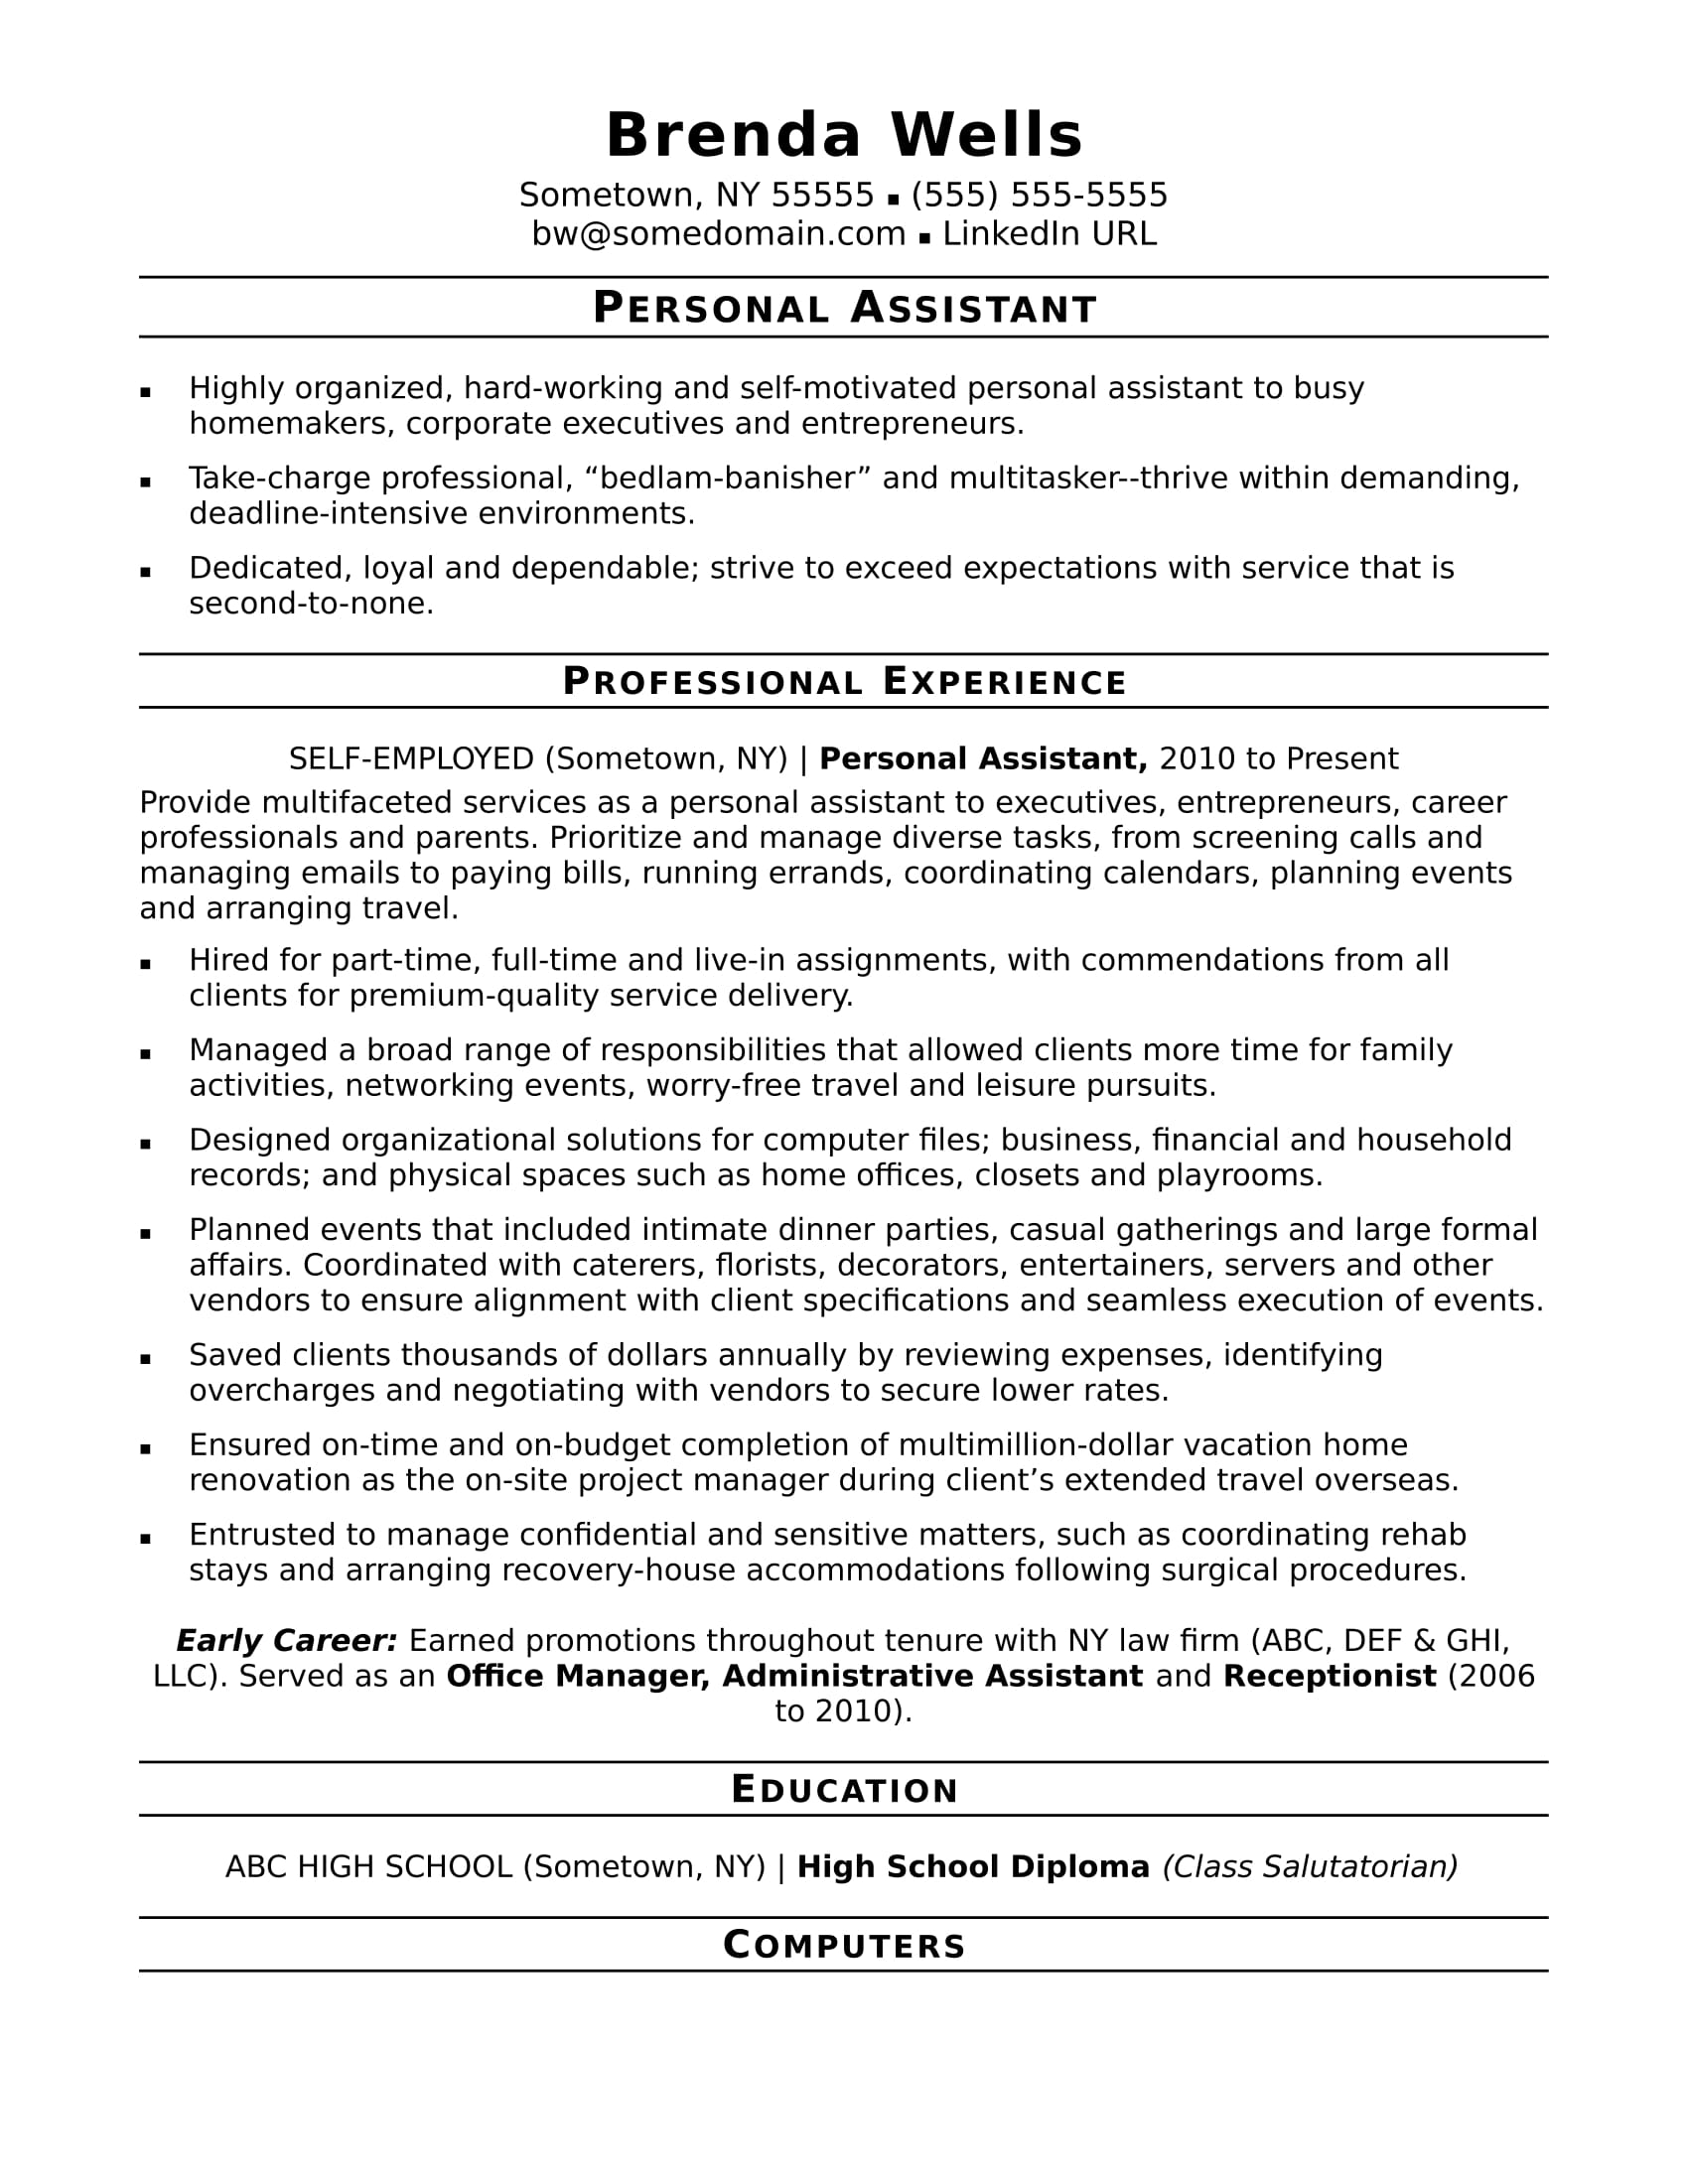 personal assistant resume sample - Homemaker Resume Samples